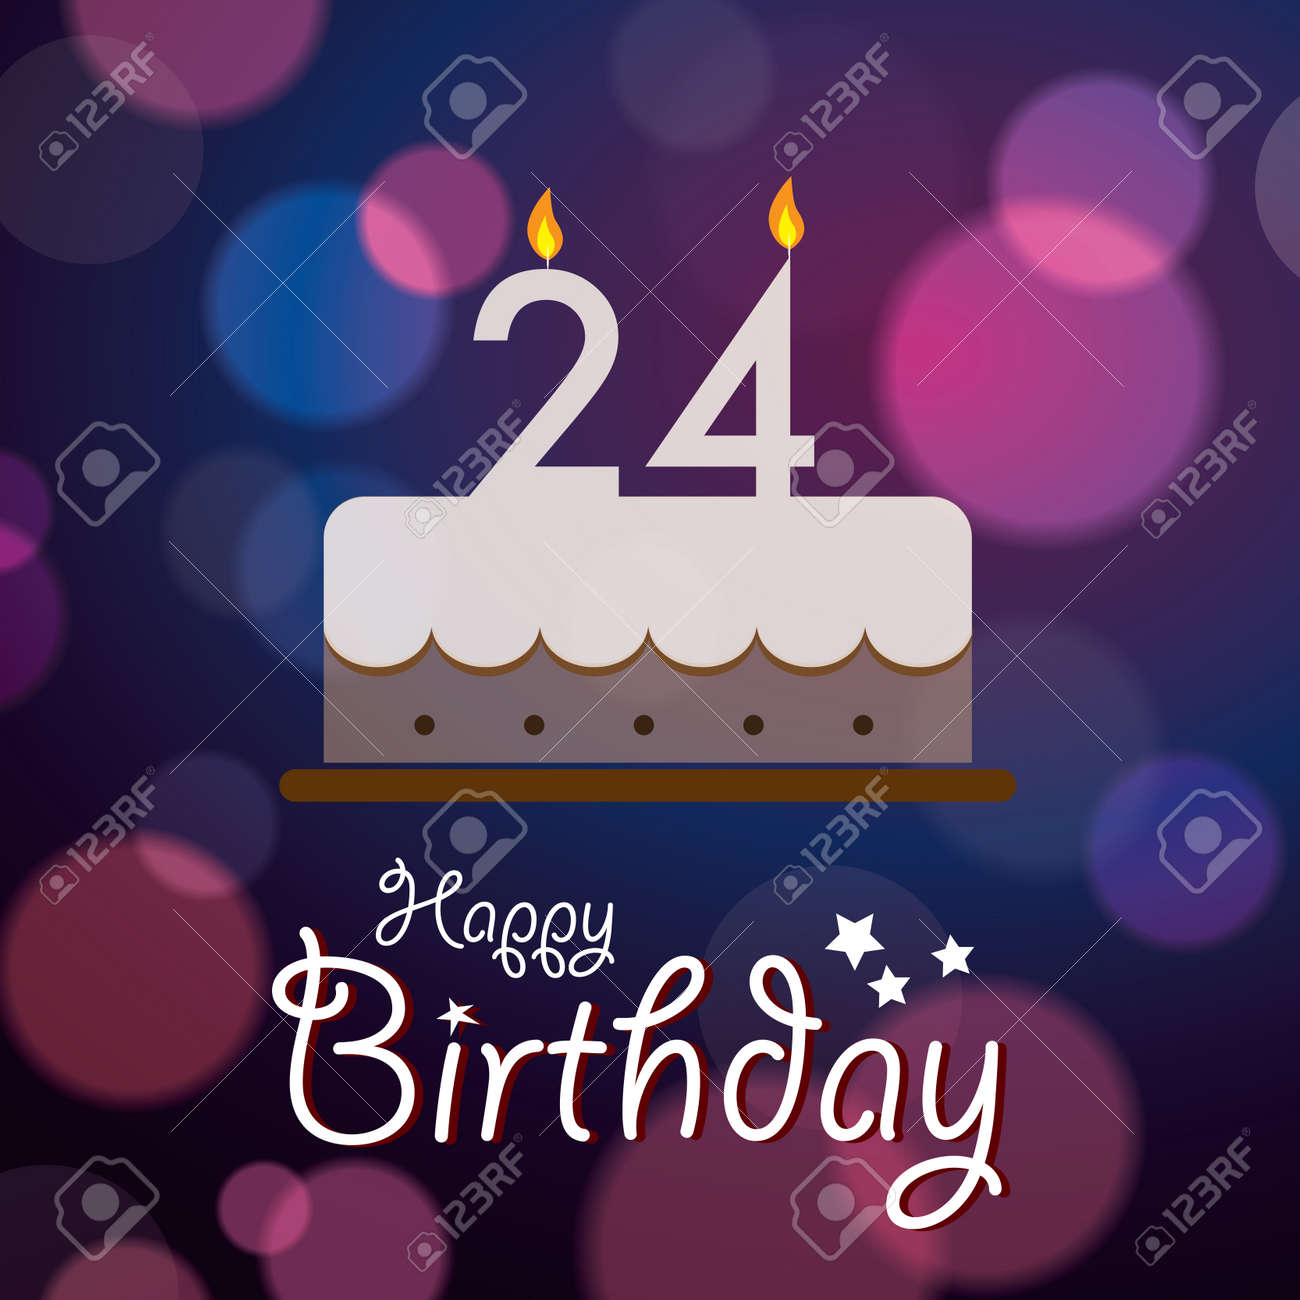 happy 24th birthday bokeh vector background with cake royalty free